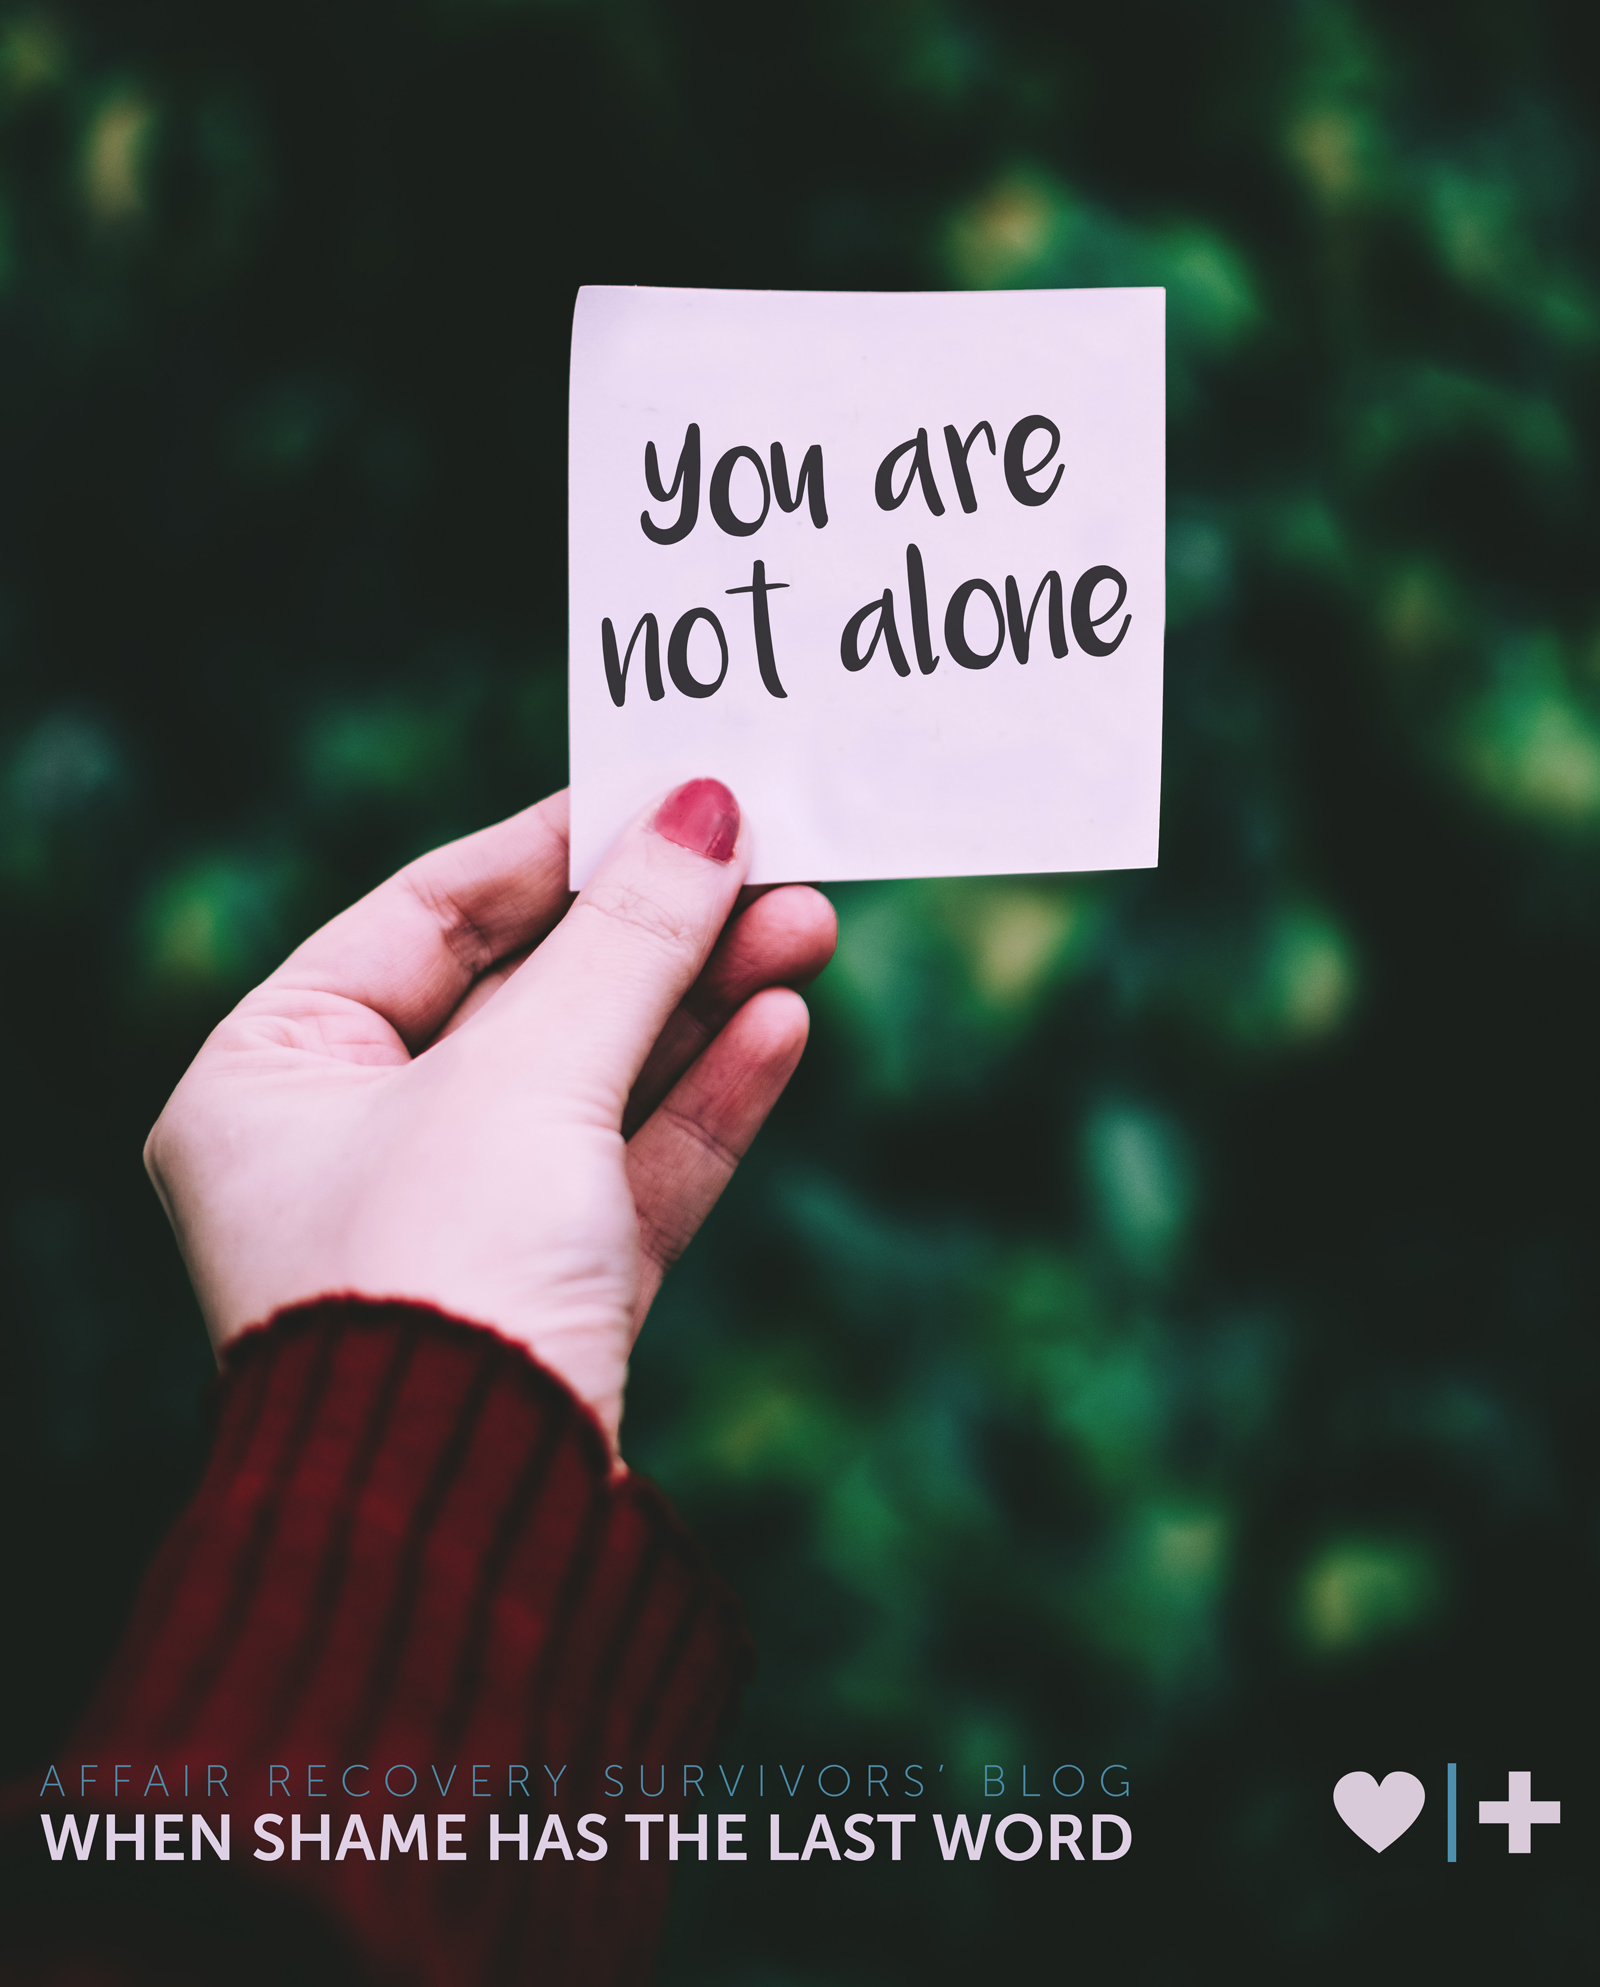 you are not alone. when shame has the last word - elizabeth - affair recovery survivors blog